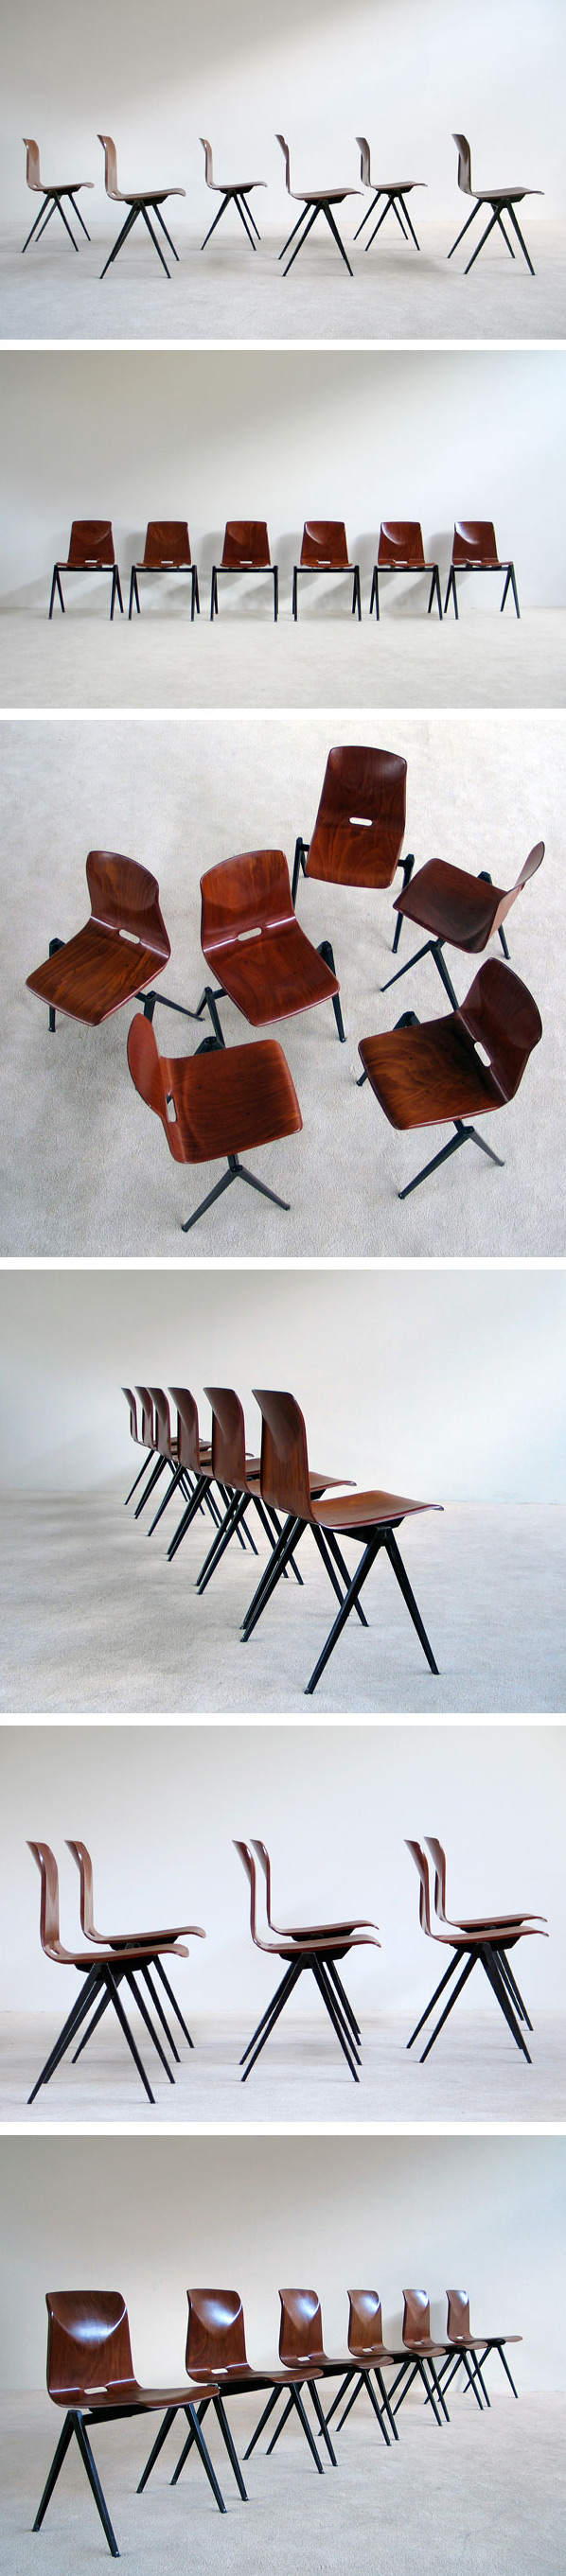 6 industrial plywood school compass chairs Large